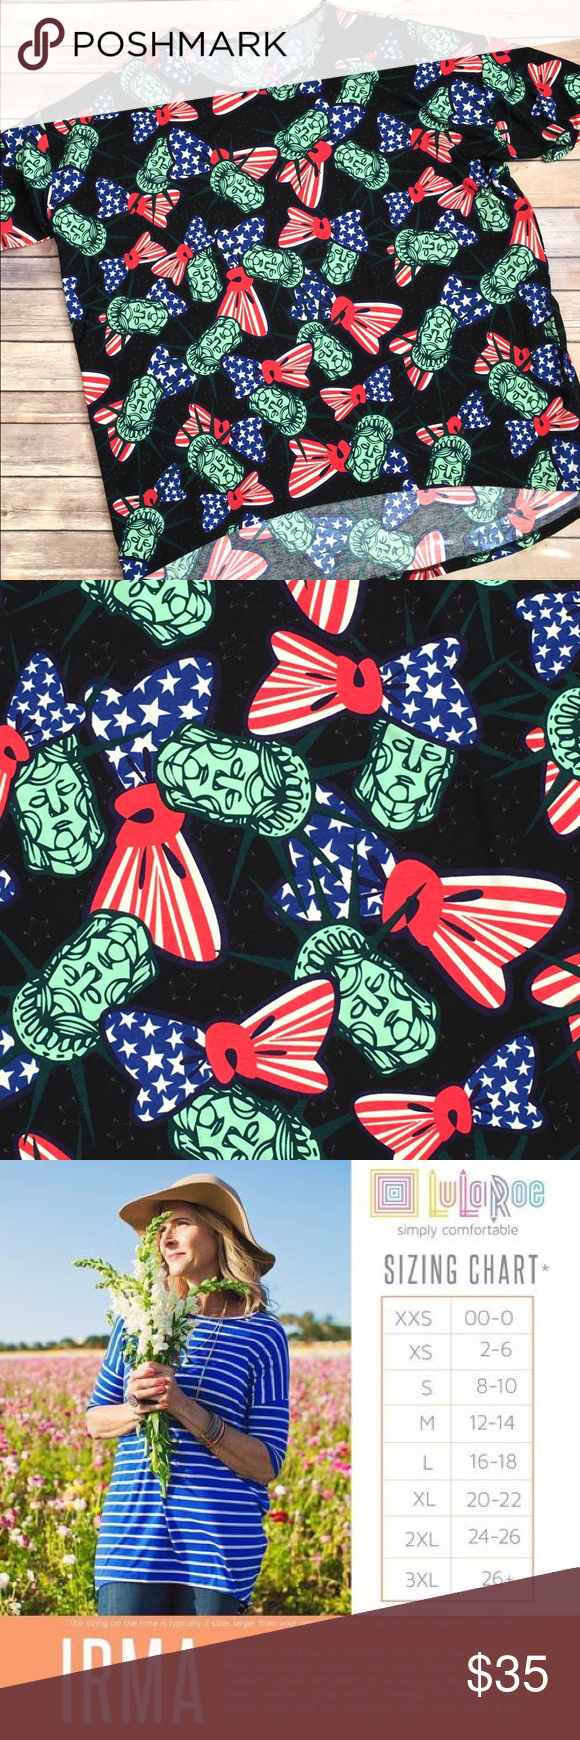 LulaRoe AMERICANA Collection 3xl Irma HURRY!!! This beauty will ship in time for July 4th! Soft tshirt material and SO AMERICAN!! 🇺🇸 JOIN us on FB at LulaRoe Johnny and Lo VIP Group! LuLaRoe Tops Tunics